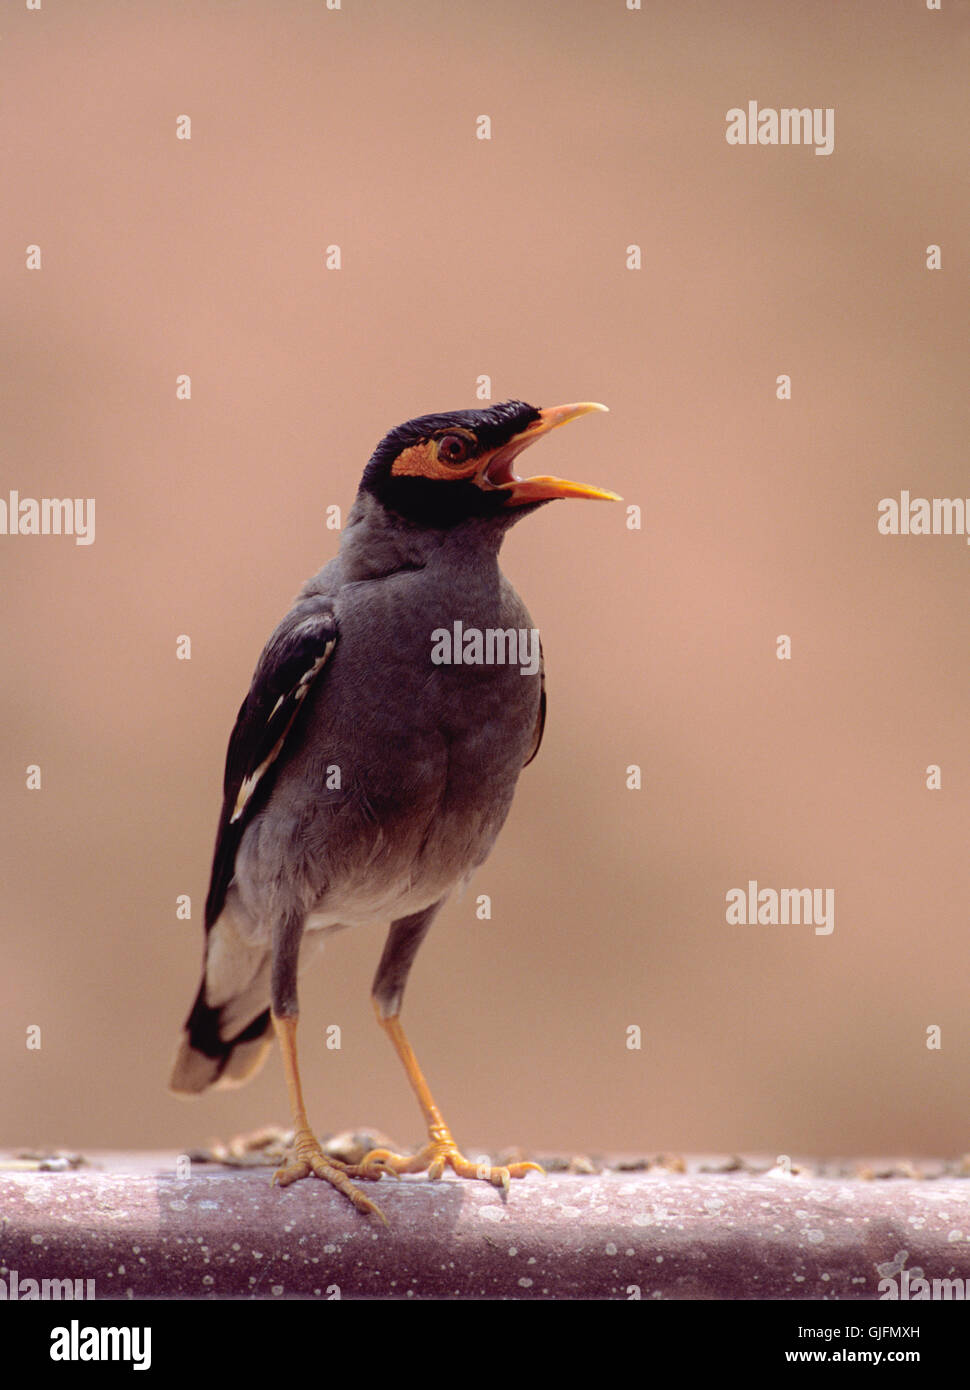 Bank Myna, Acridotheres ginginianus, adult bird,Bharatpur, Rajasthan, India, standing on wall, beak wide open to - Stock Image